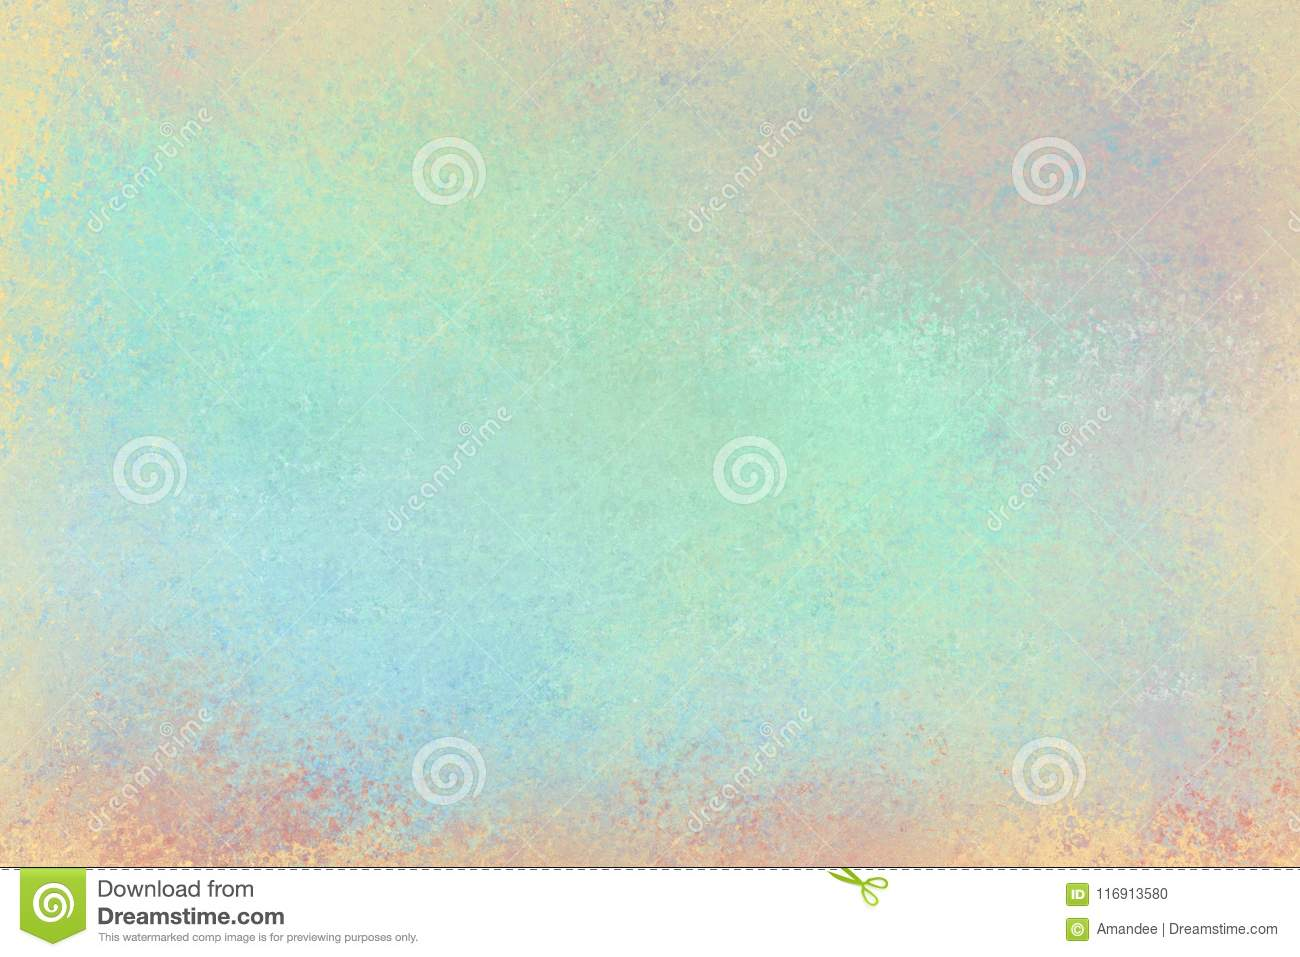 Old distressed background design with faded grunge texture in colors of pastel blue green pink yellow orange and red